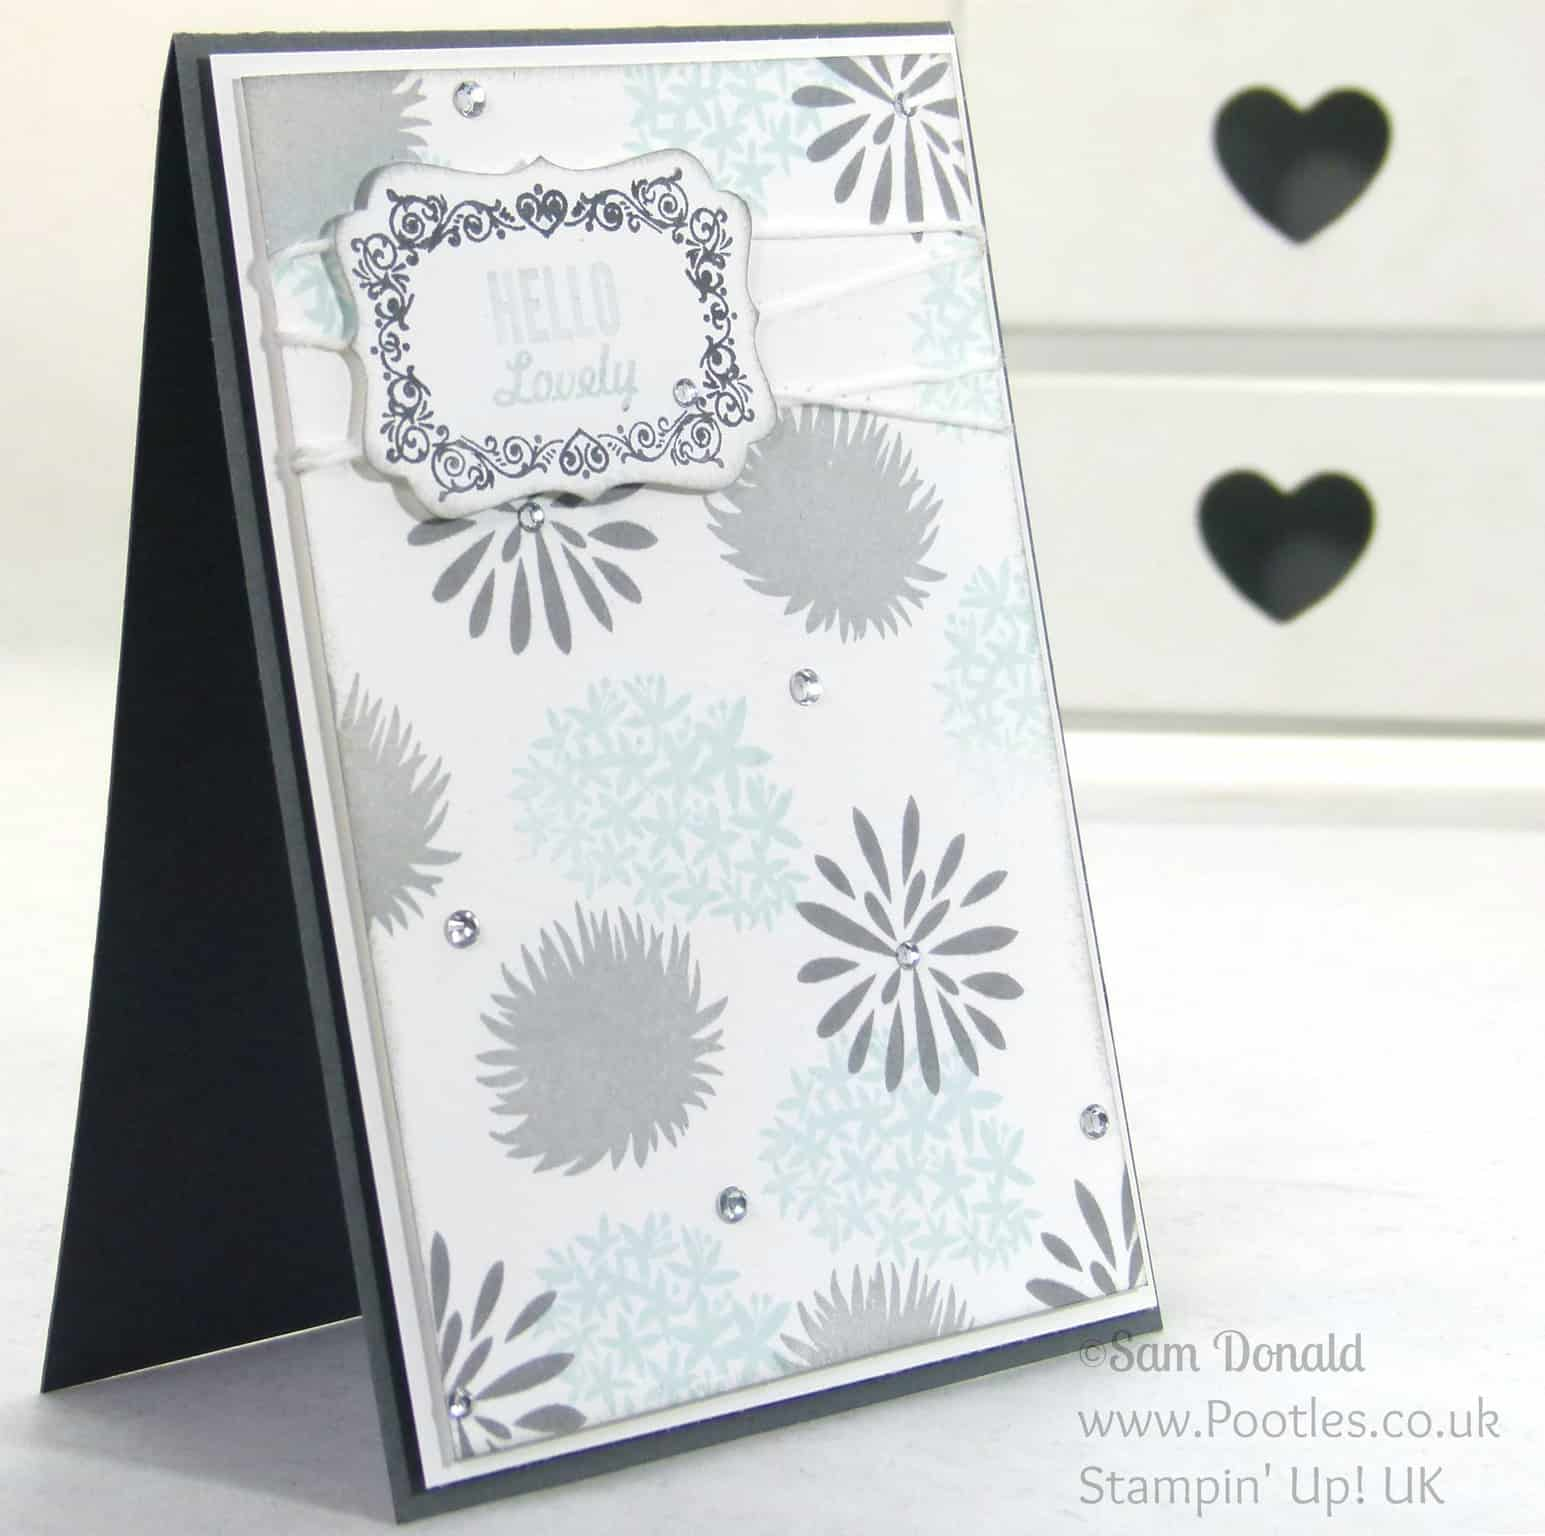 POOTLES Stampin up Uk Simple Stems. Soft and Gentle Card